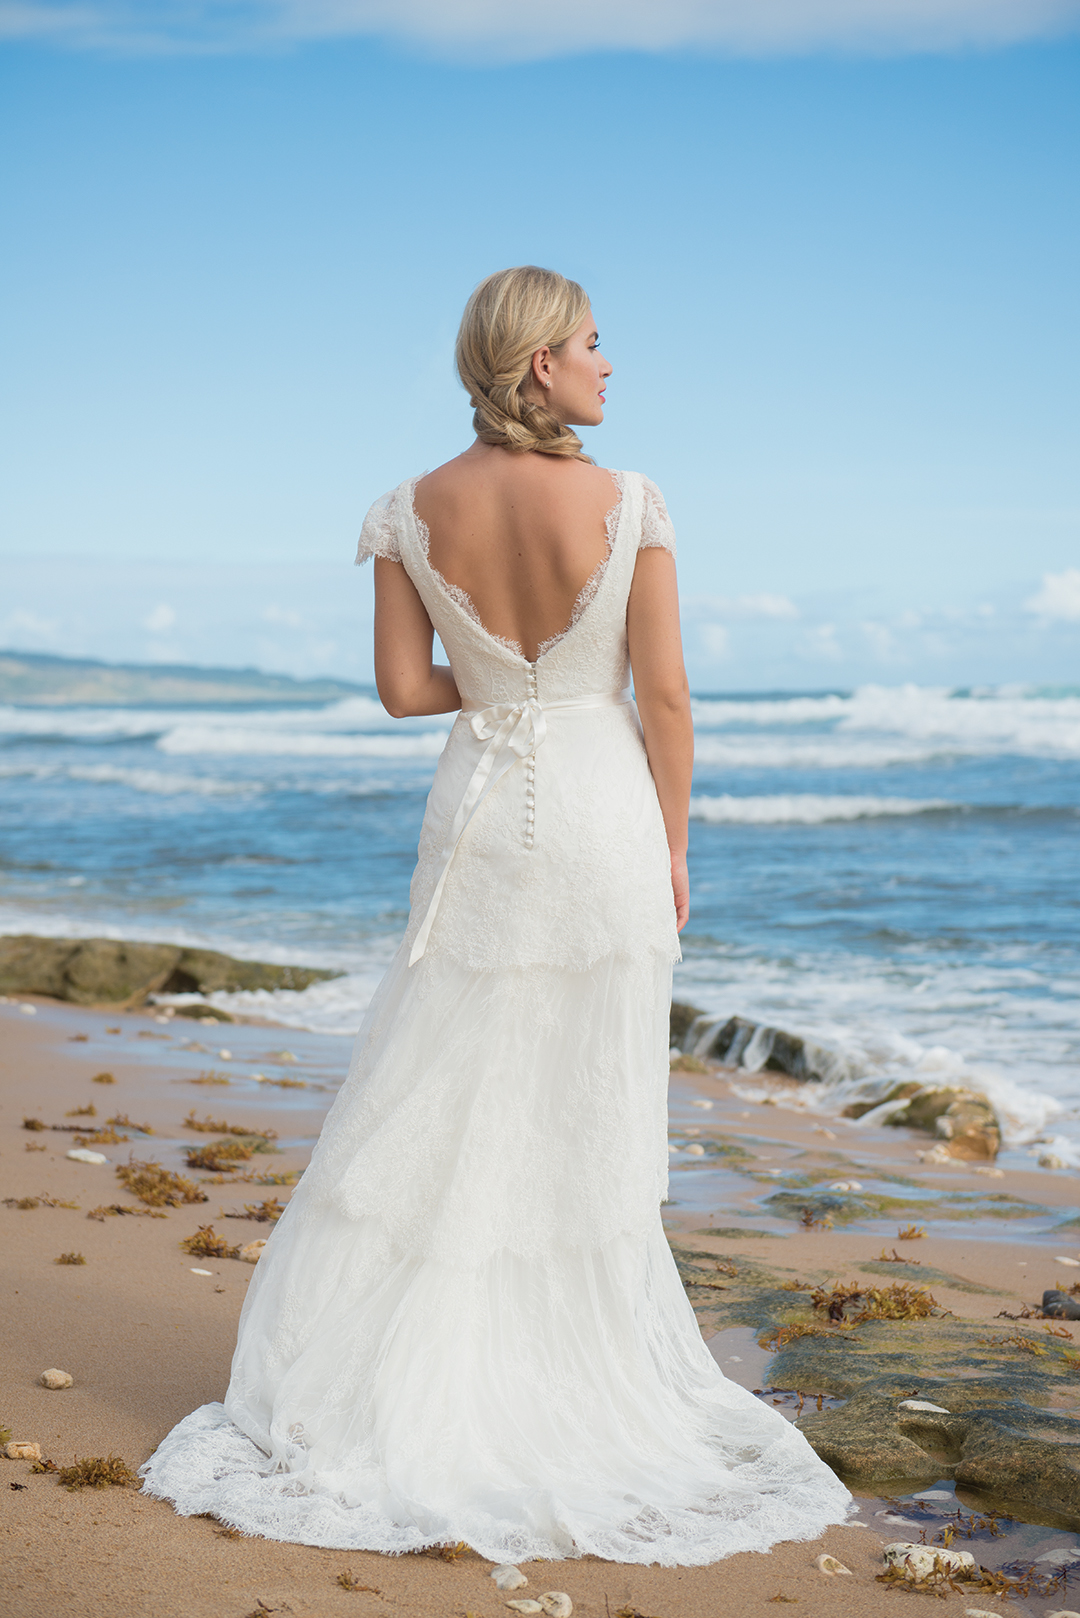 Ocean Mist by Ivory & Co. Bridal - available now to try